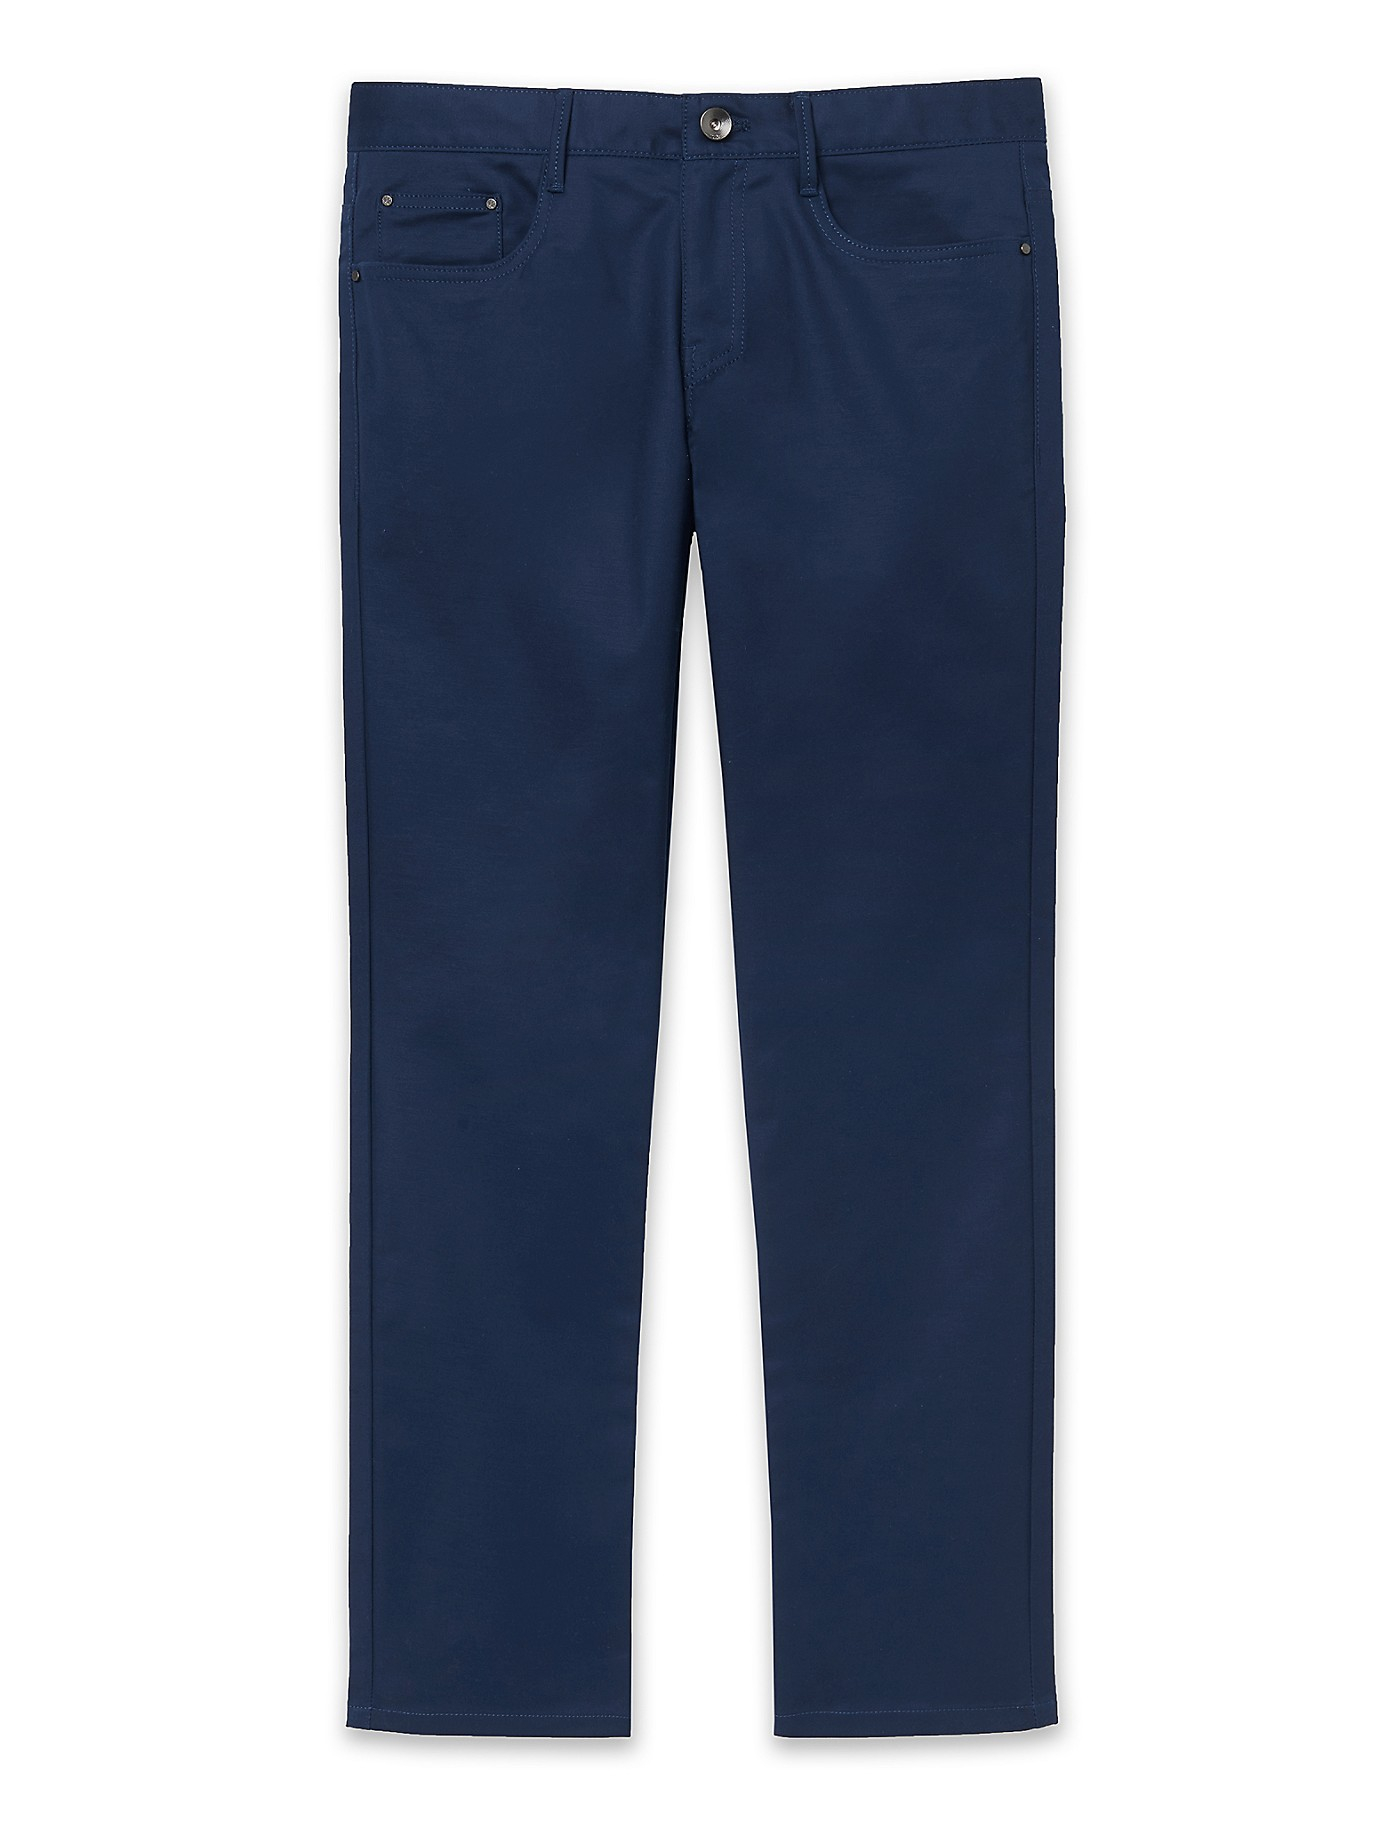 Lyst calvin klein x fit ultra slim fit stretch pants in blue for Calvin klein slim fit stretch shirt